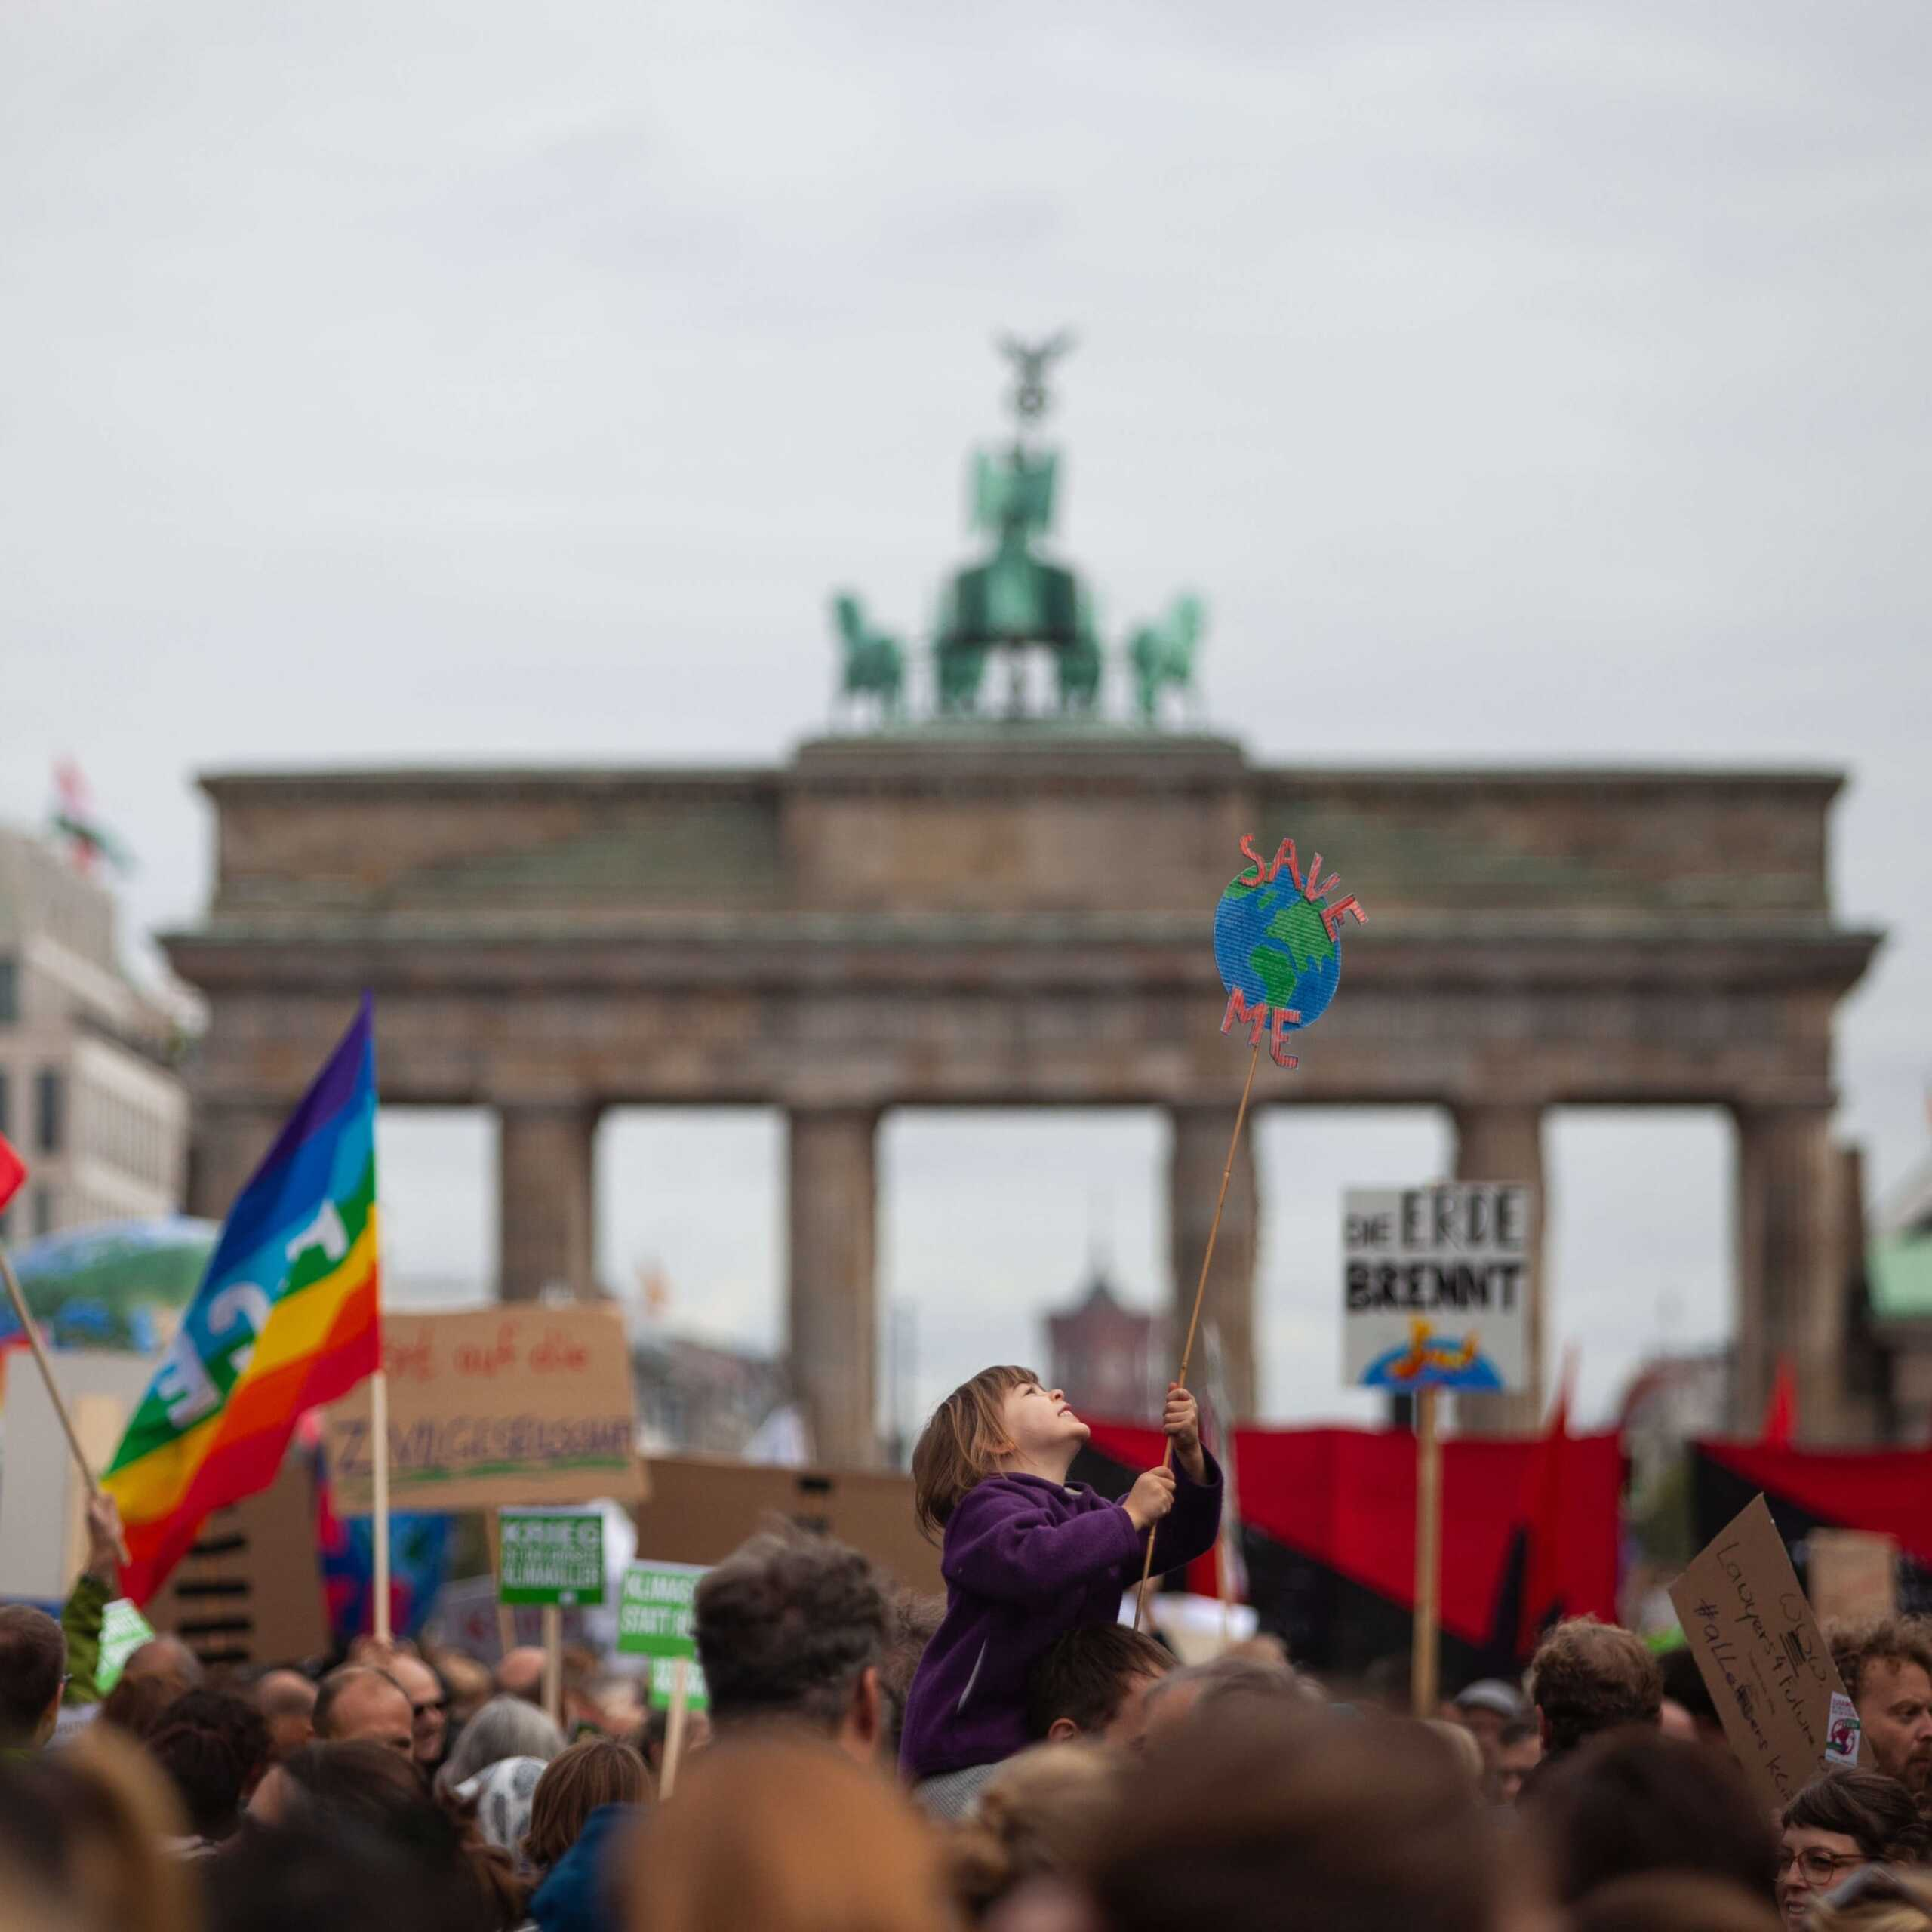 Berlin Climate Strike, September 2019